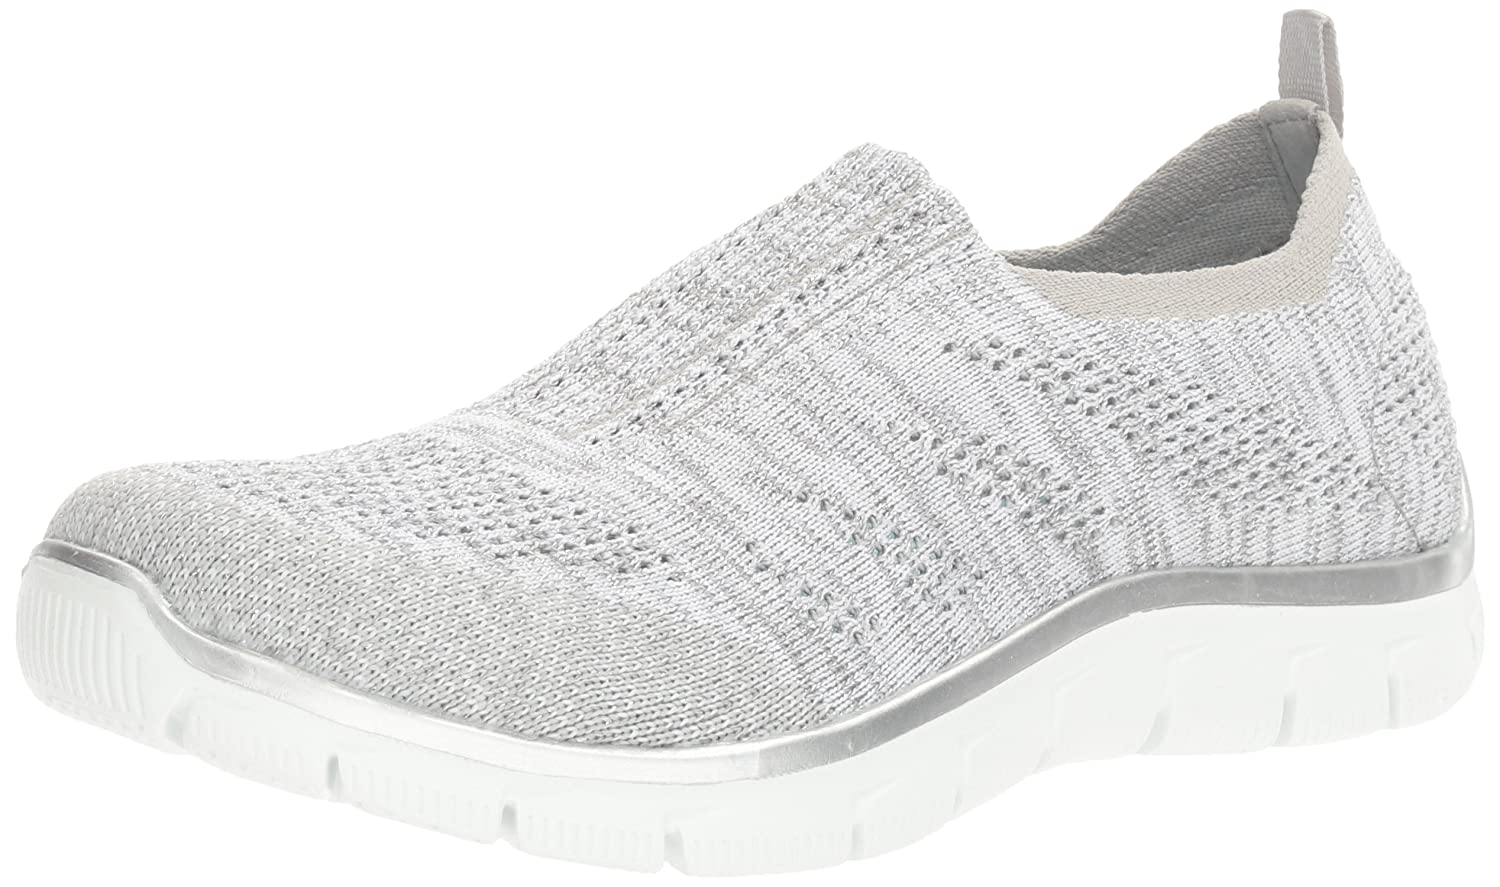 Skechers Damen Slipper Empire Round Up Grau/Silber  35 EU|GYSL Grey/Silver